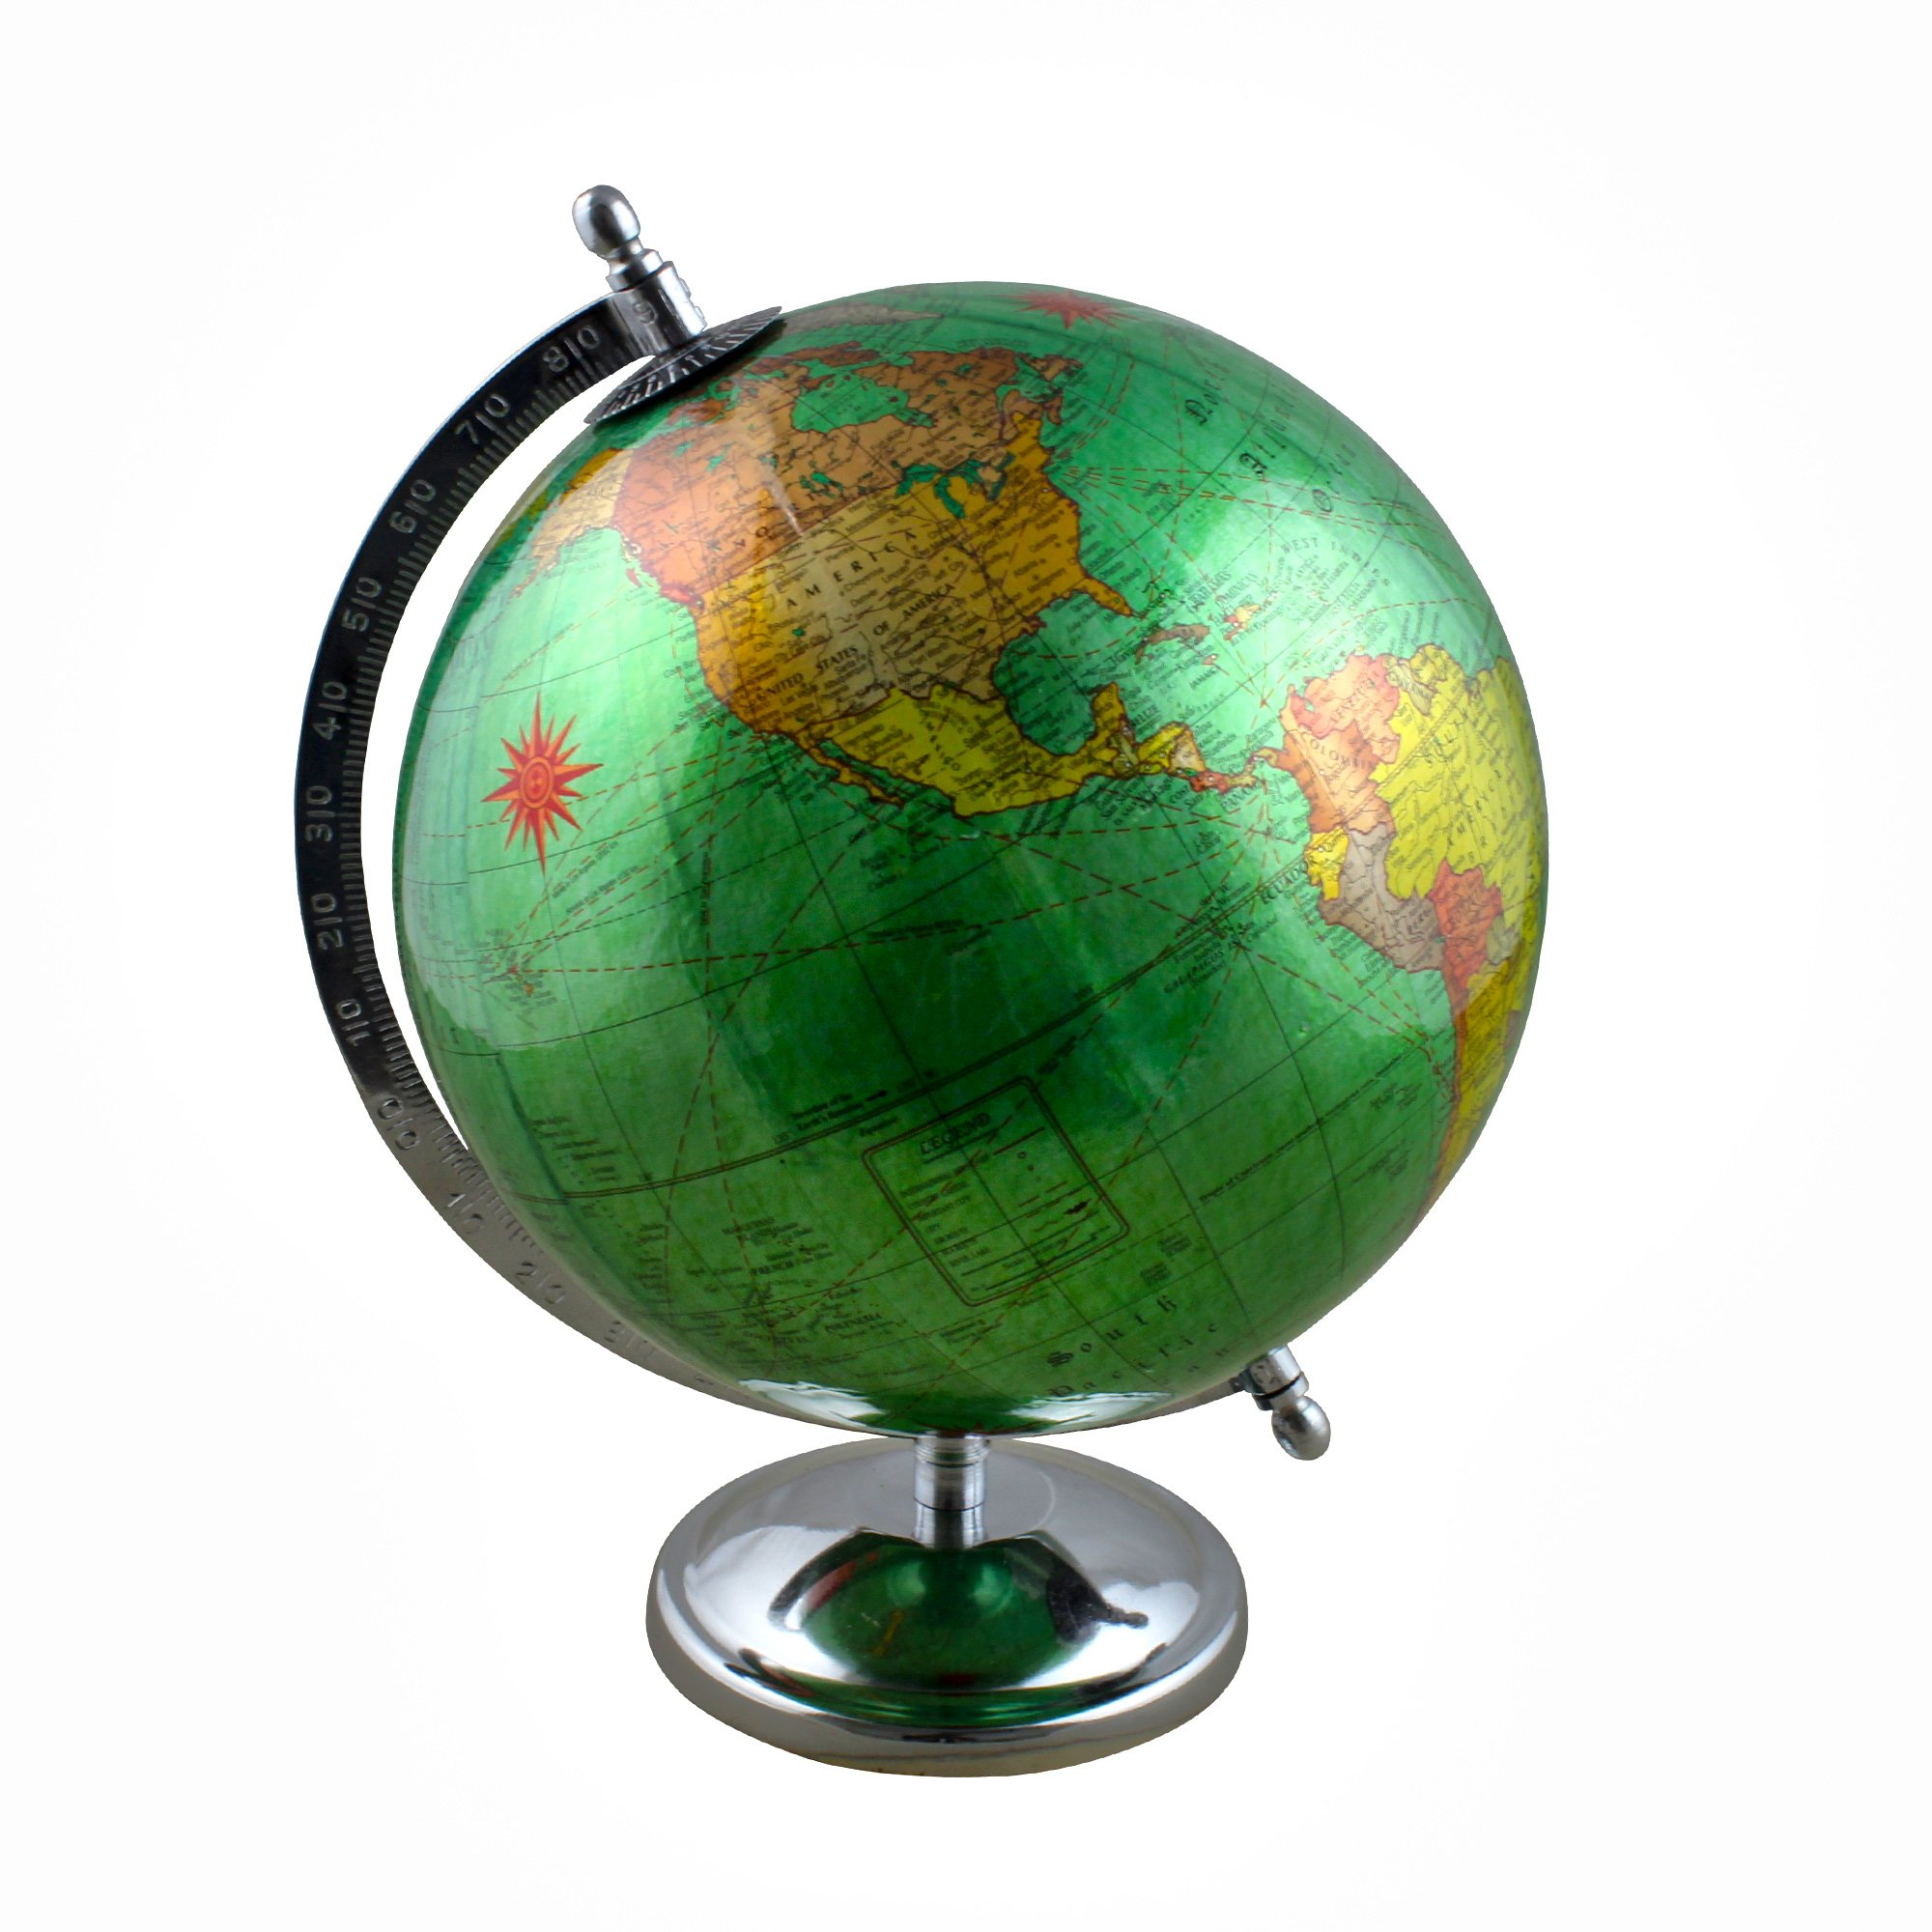 Desktop Political Interactive World Globe Earth Map with Stand - Perfect Gift for Home Office Desk Decoration - Stock Clearance Sale!!